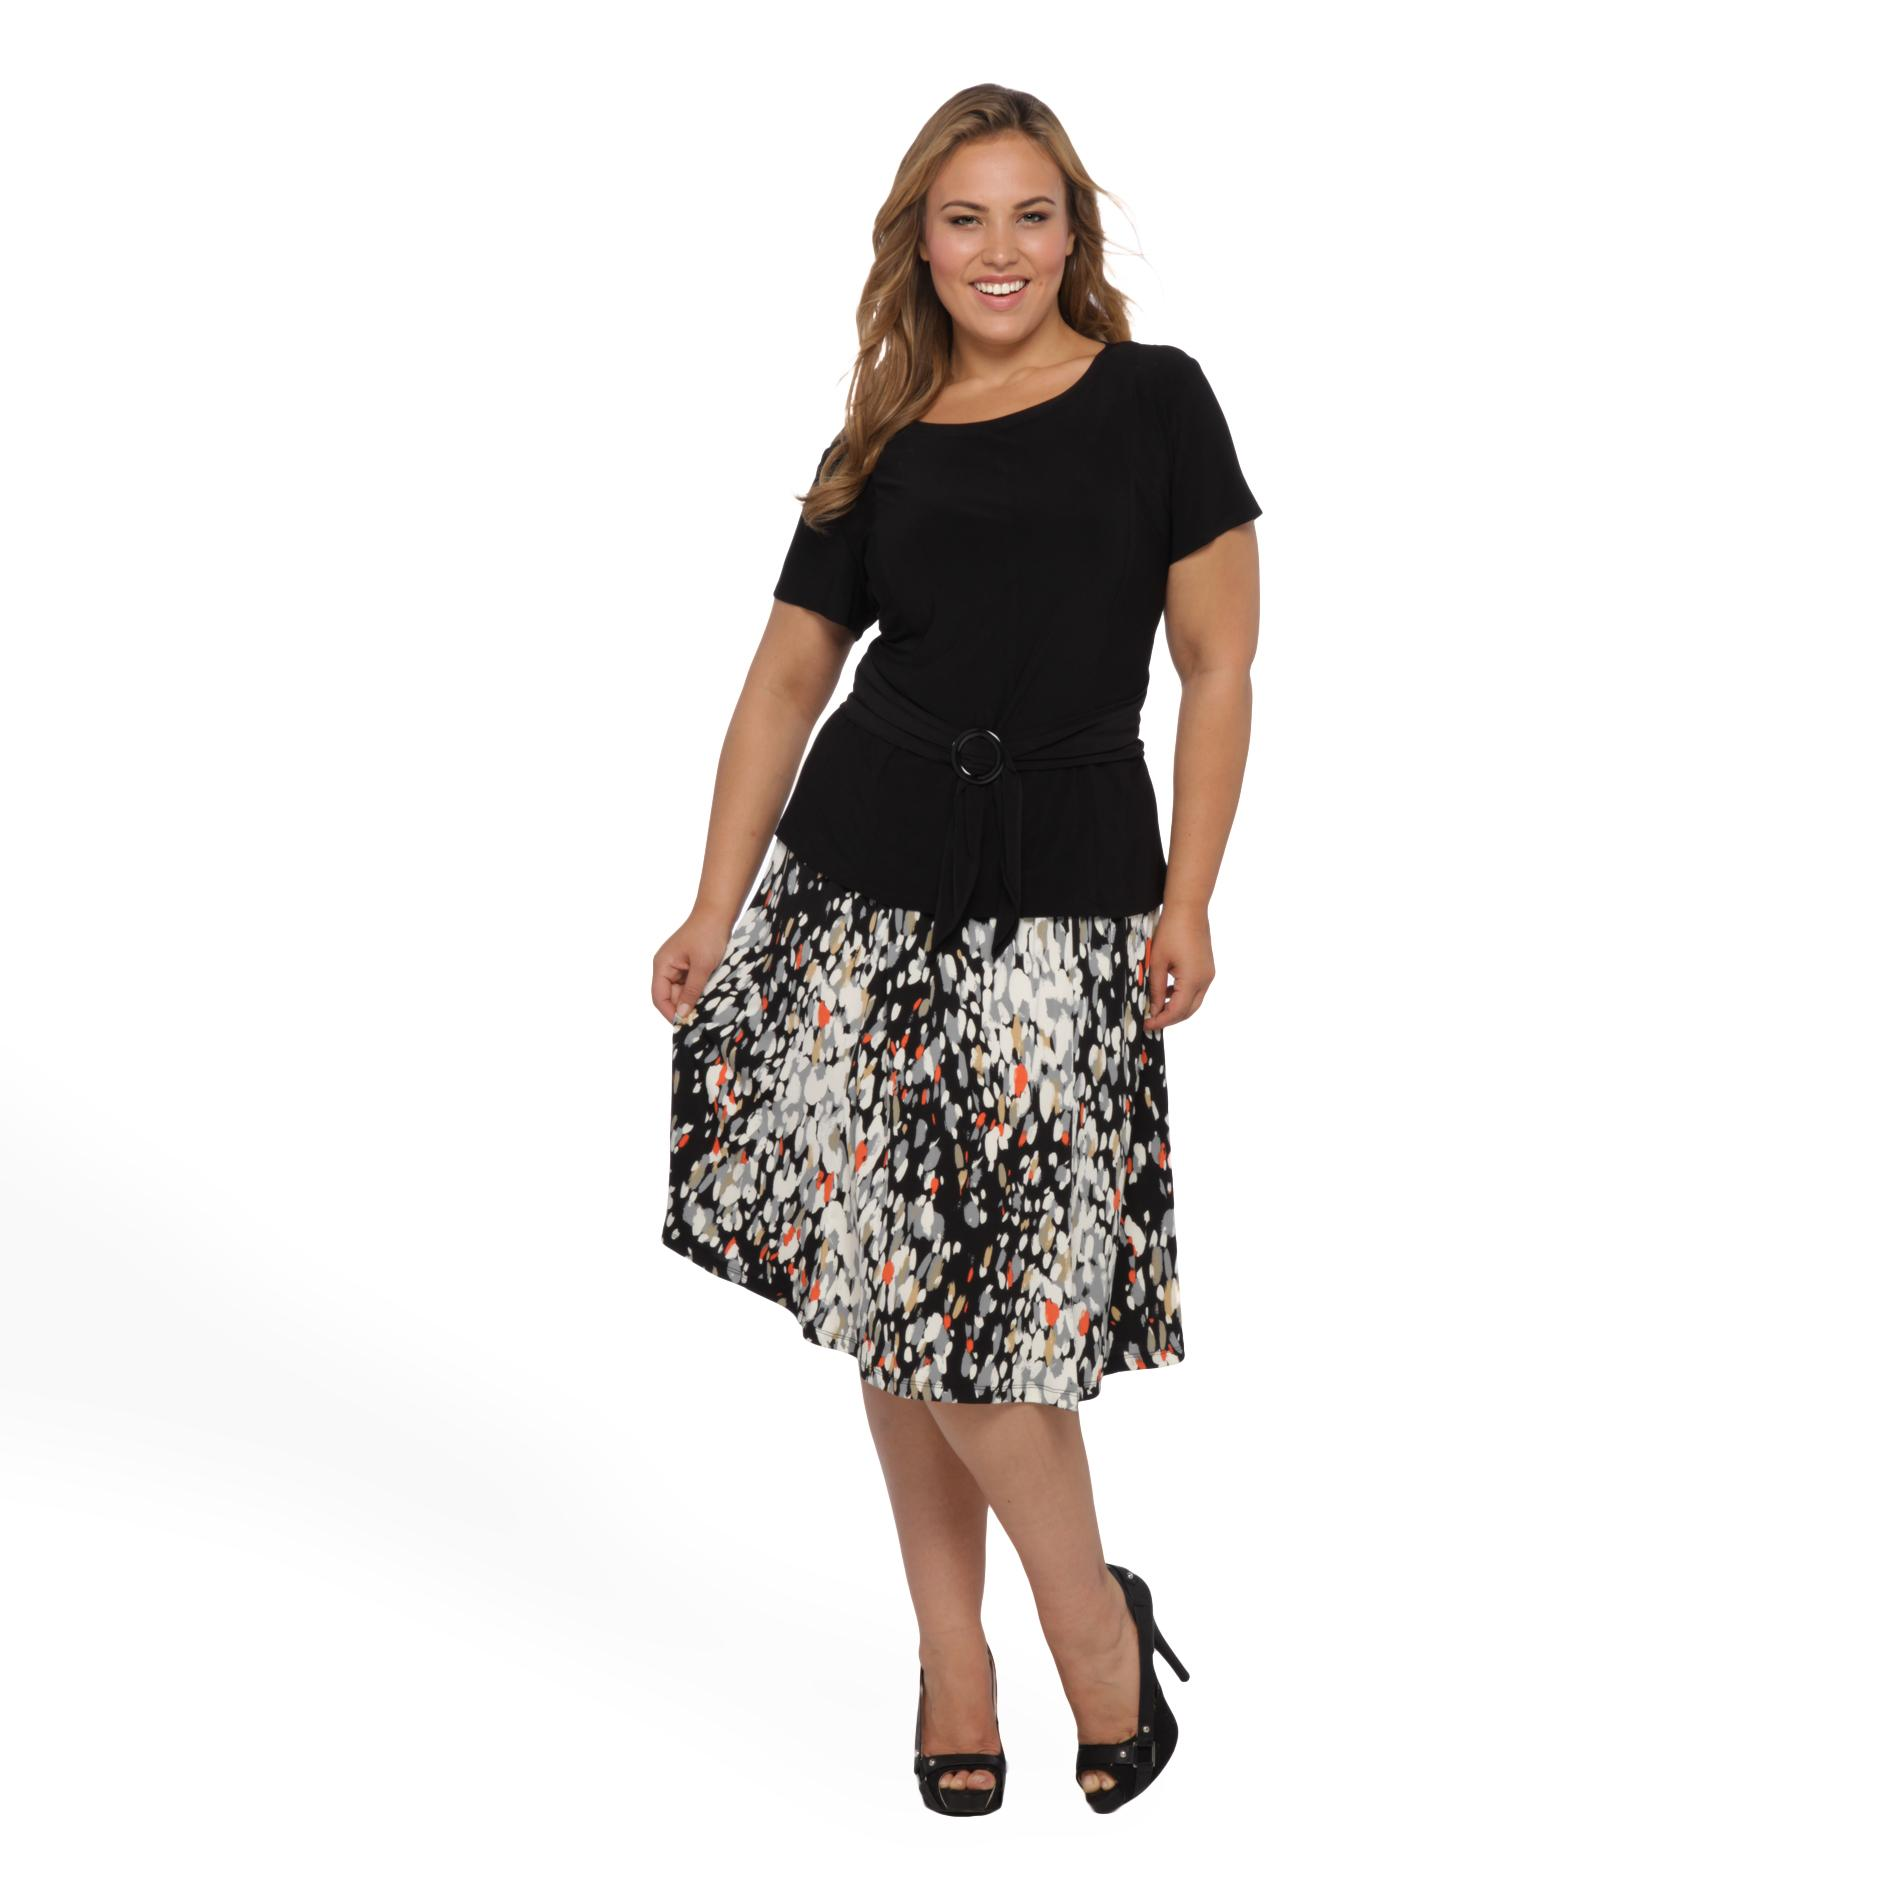 Perception Women's Plus Dress & Belt at Sears.com